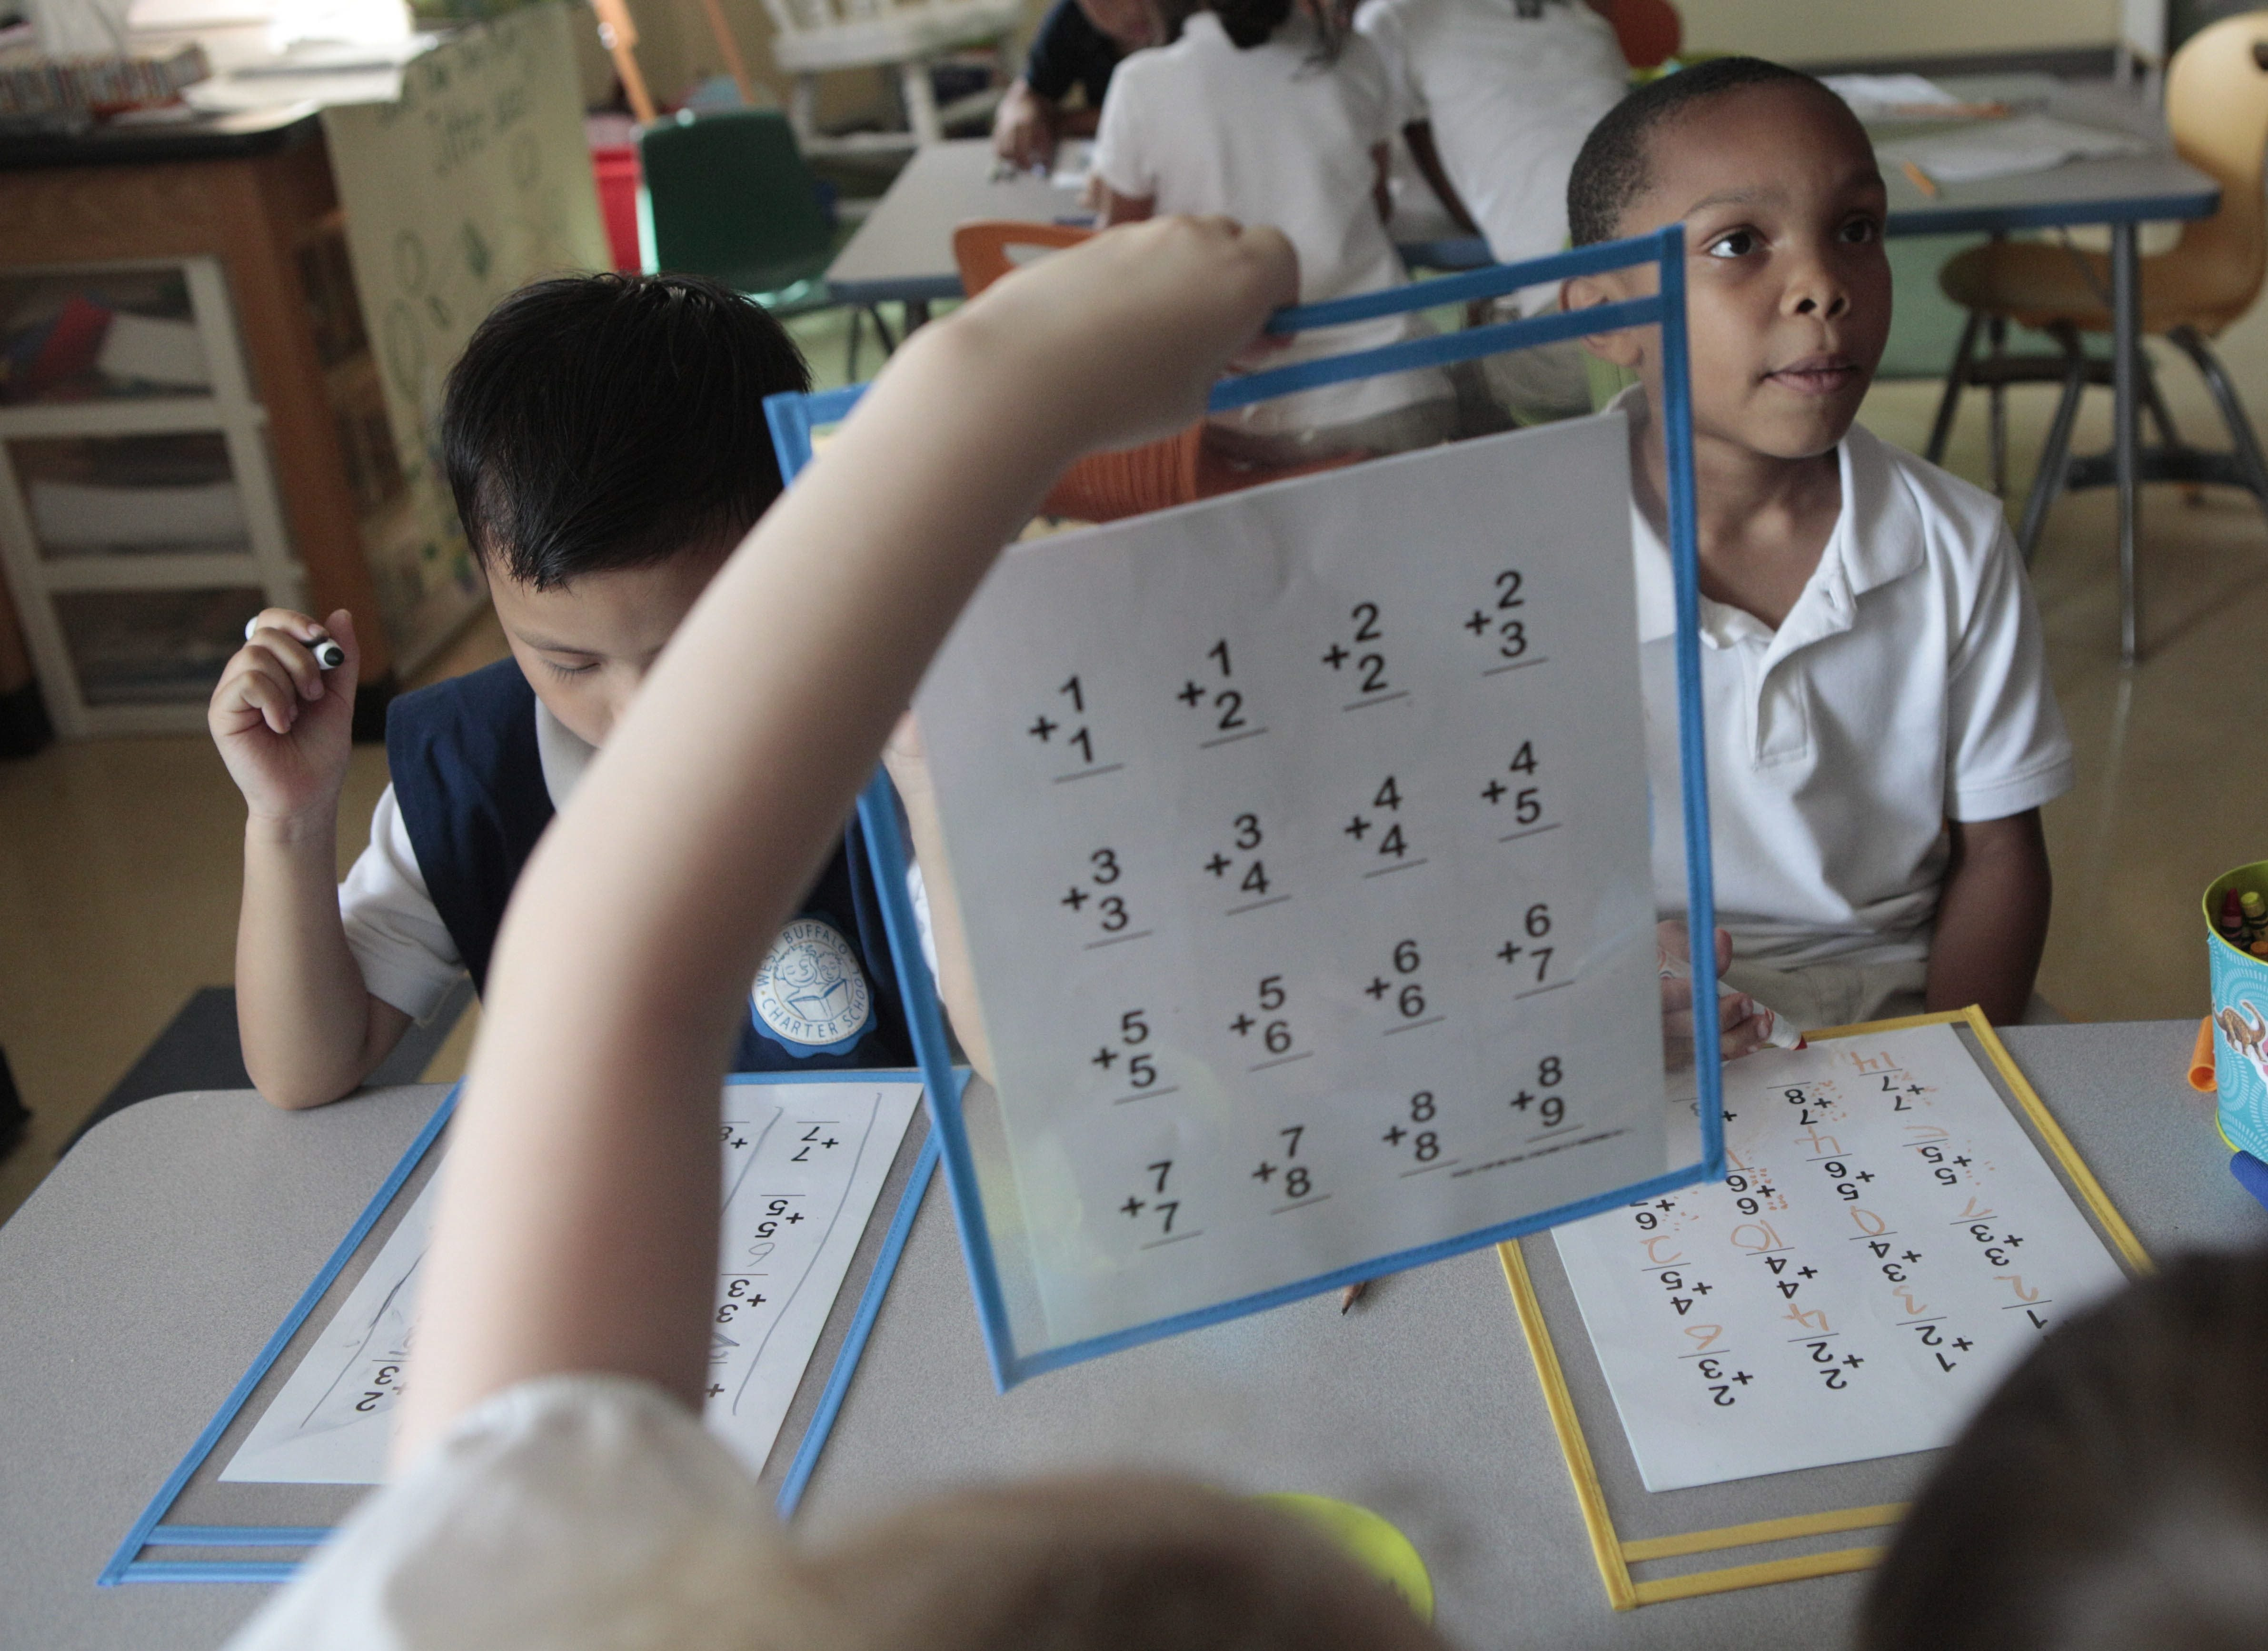 First-grade students Way Yaw Oo, left, and Ivan Rankin Jr., right, work on a math assignment at the West Buffalo Charter School on Wednesday.